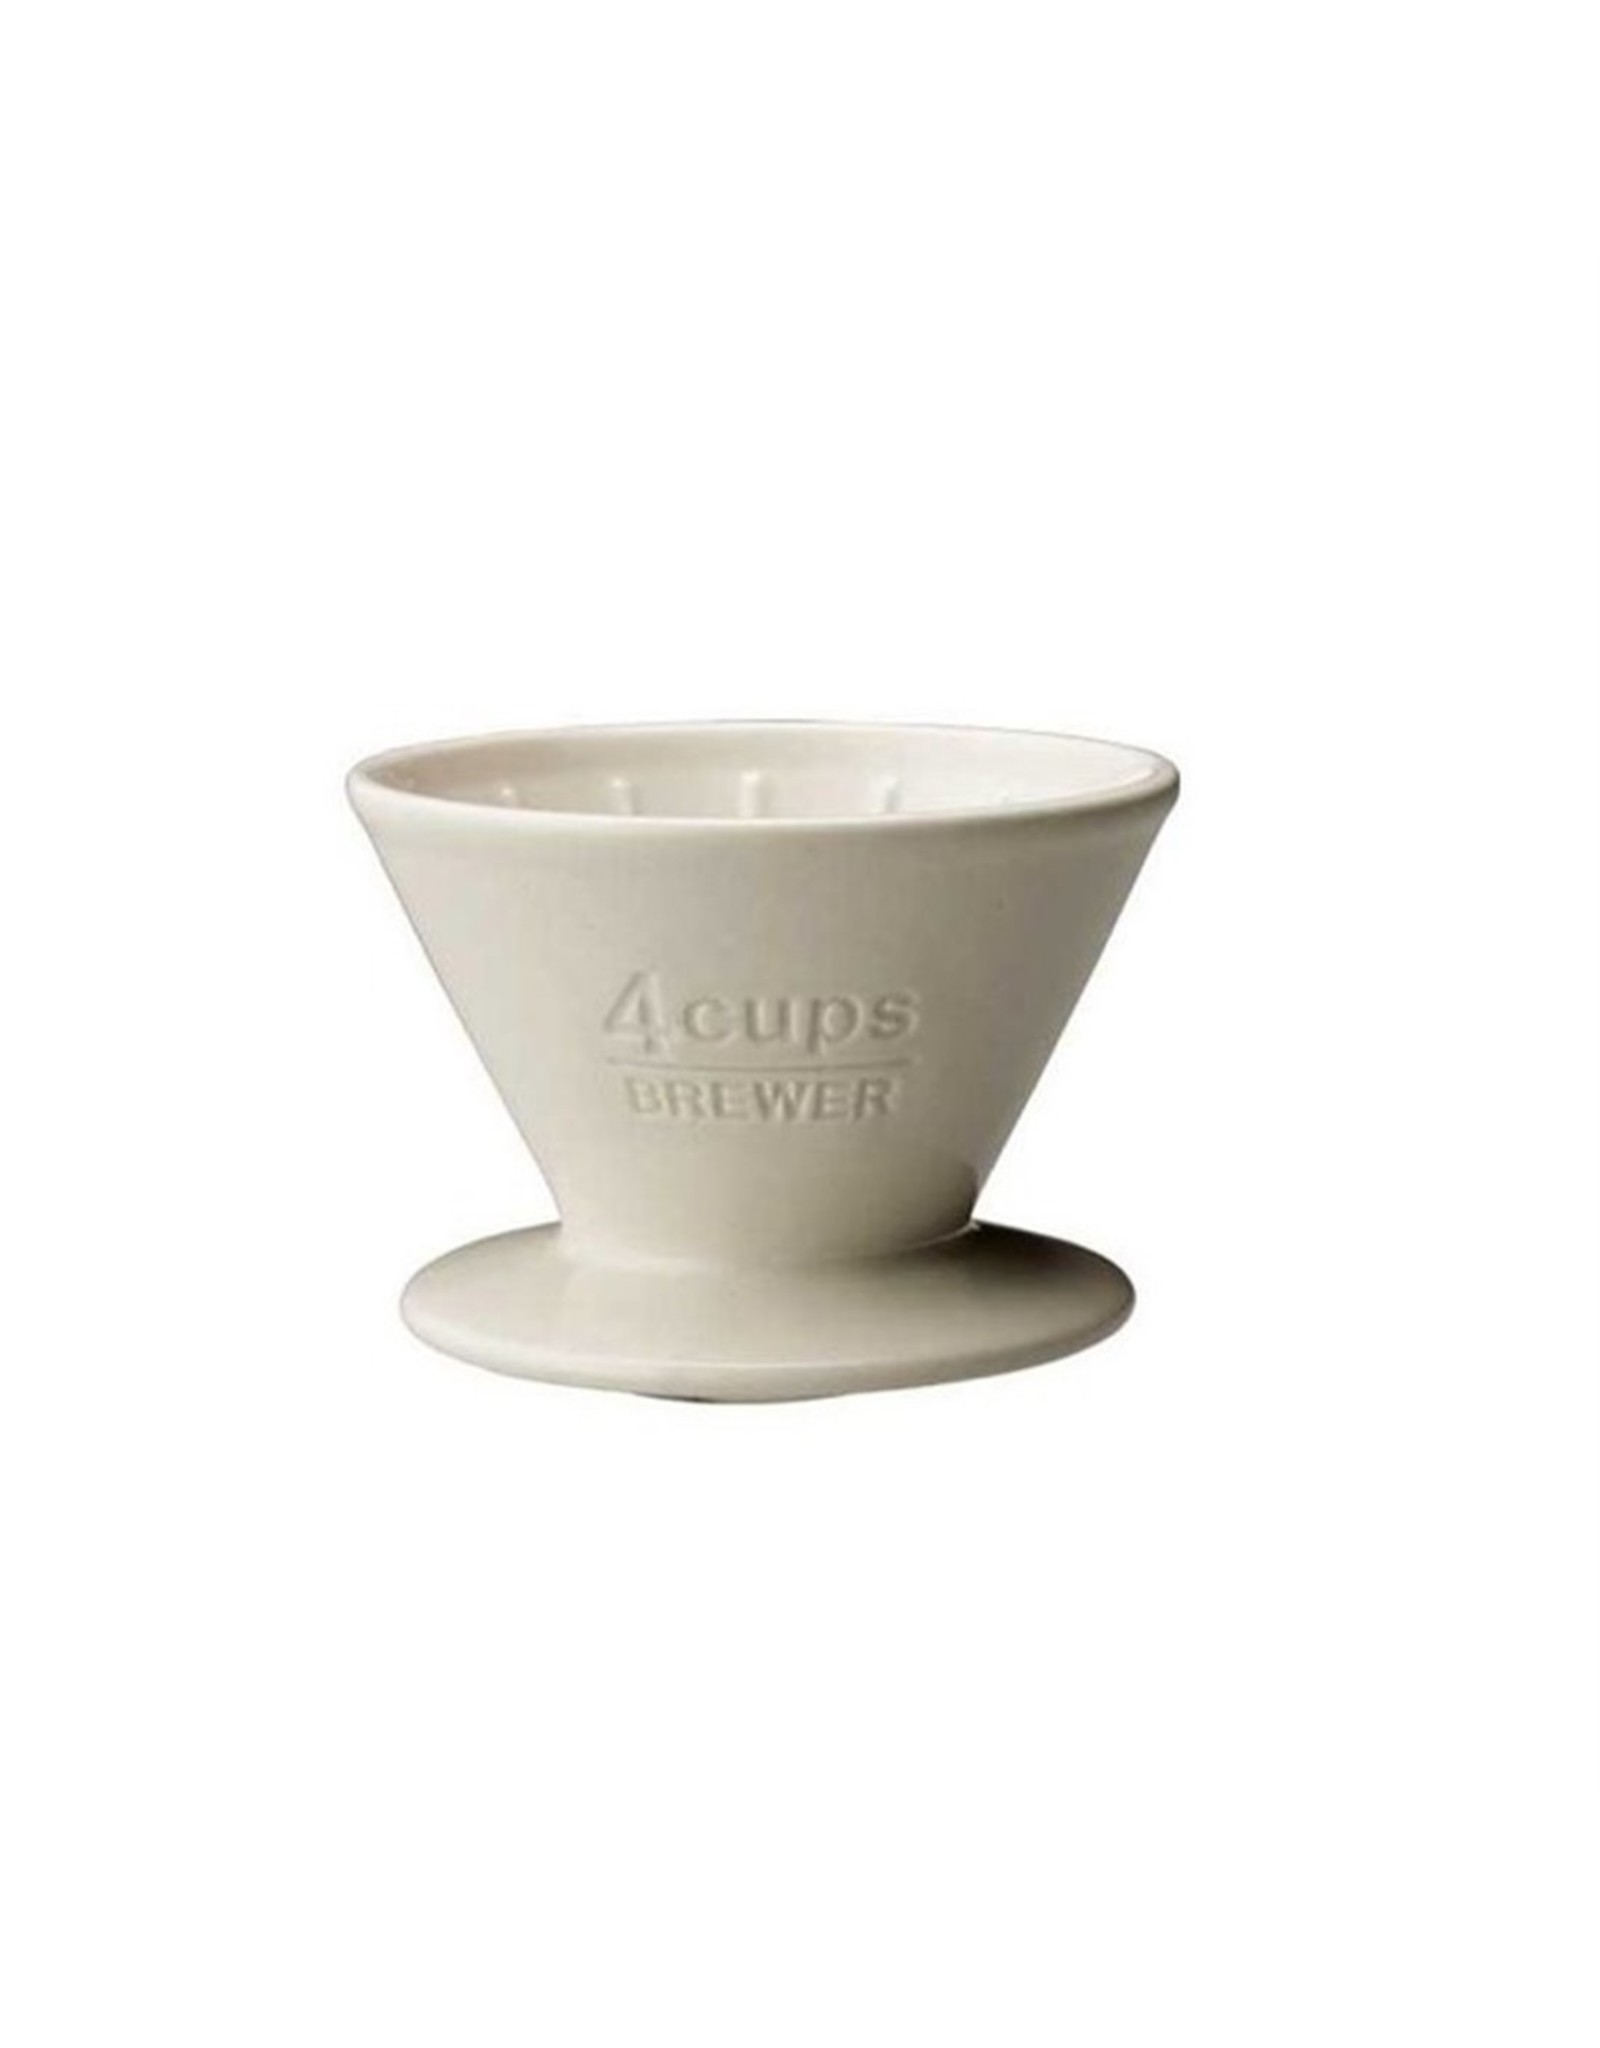 Kinto - Slow Coffee Style - Porcelain Brewer - 4 -cup